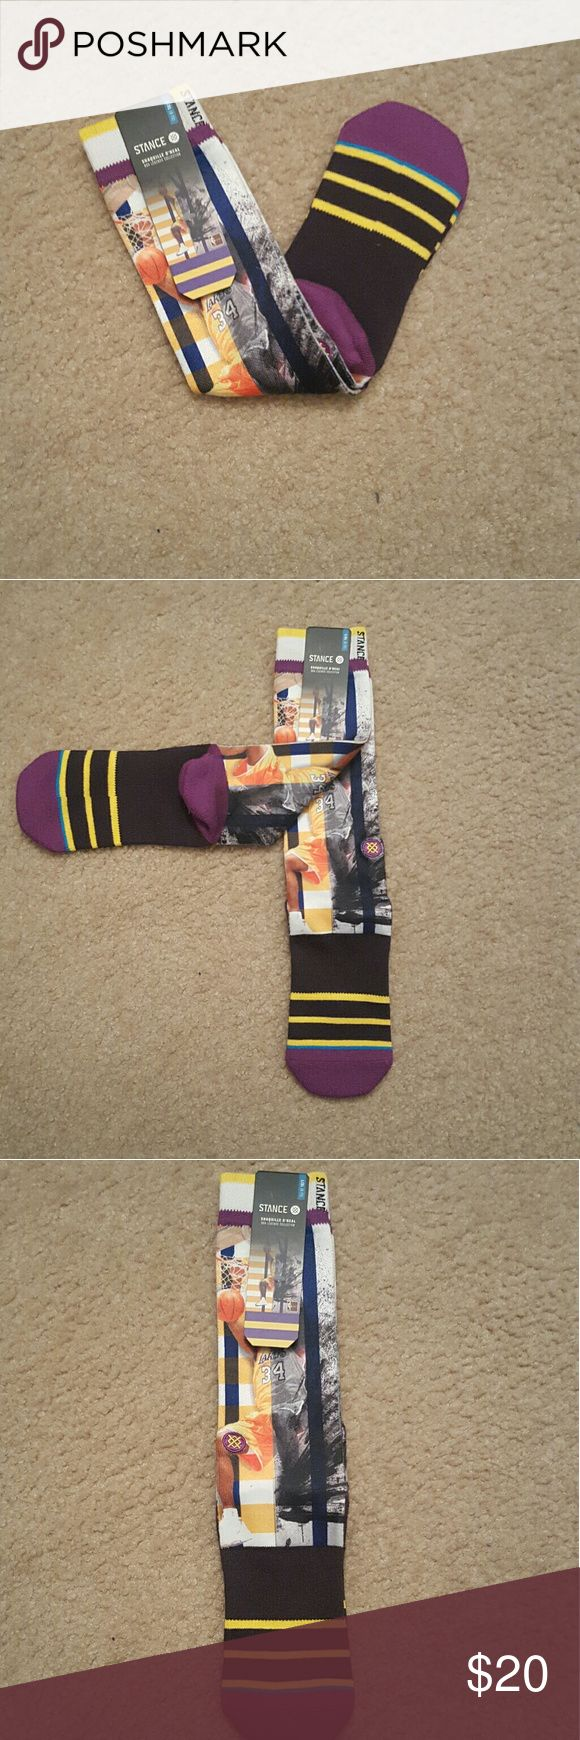 Stance LA Lakers Shaquille O'Neal socks - L/XL NWT Stance LA Lakers Shaquille O'Neal socks size L/XL. Part of Stance's NBA Legends Collection.  #stancesocks #socks #nba #shaq #lakers #lalakers Stance Underwear & Socks Athletic Socks